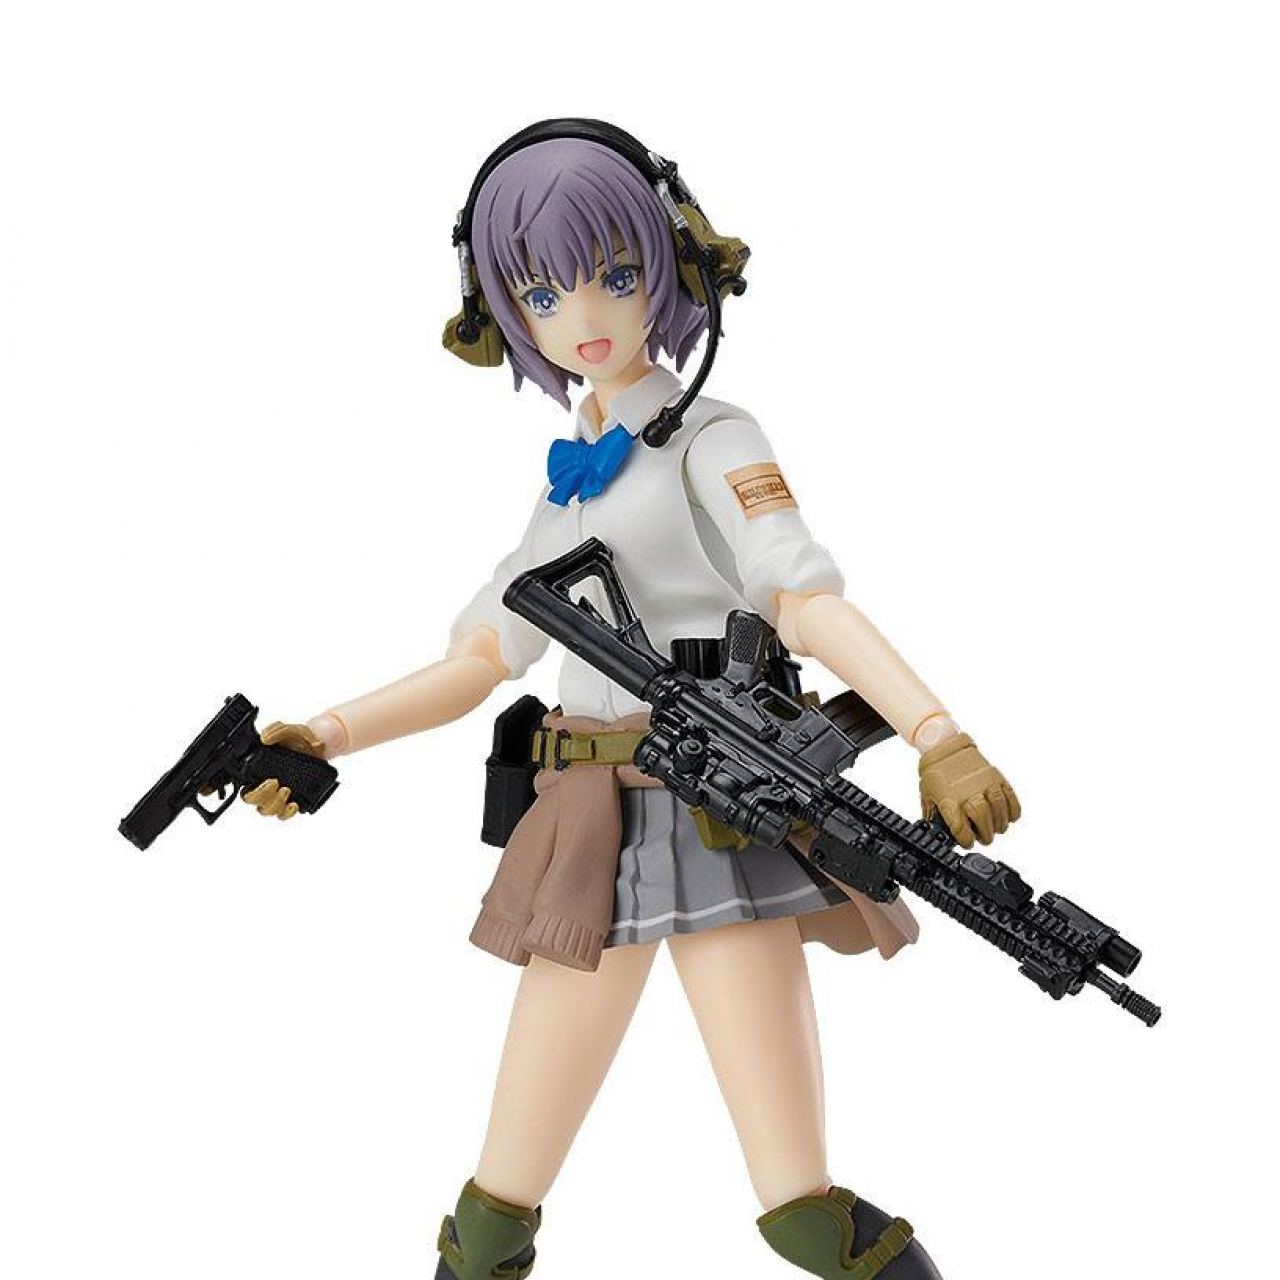 Little Armory Figma Action Figure Miyo Asato Summer Uniform Ver. 13 cm